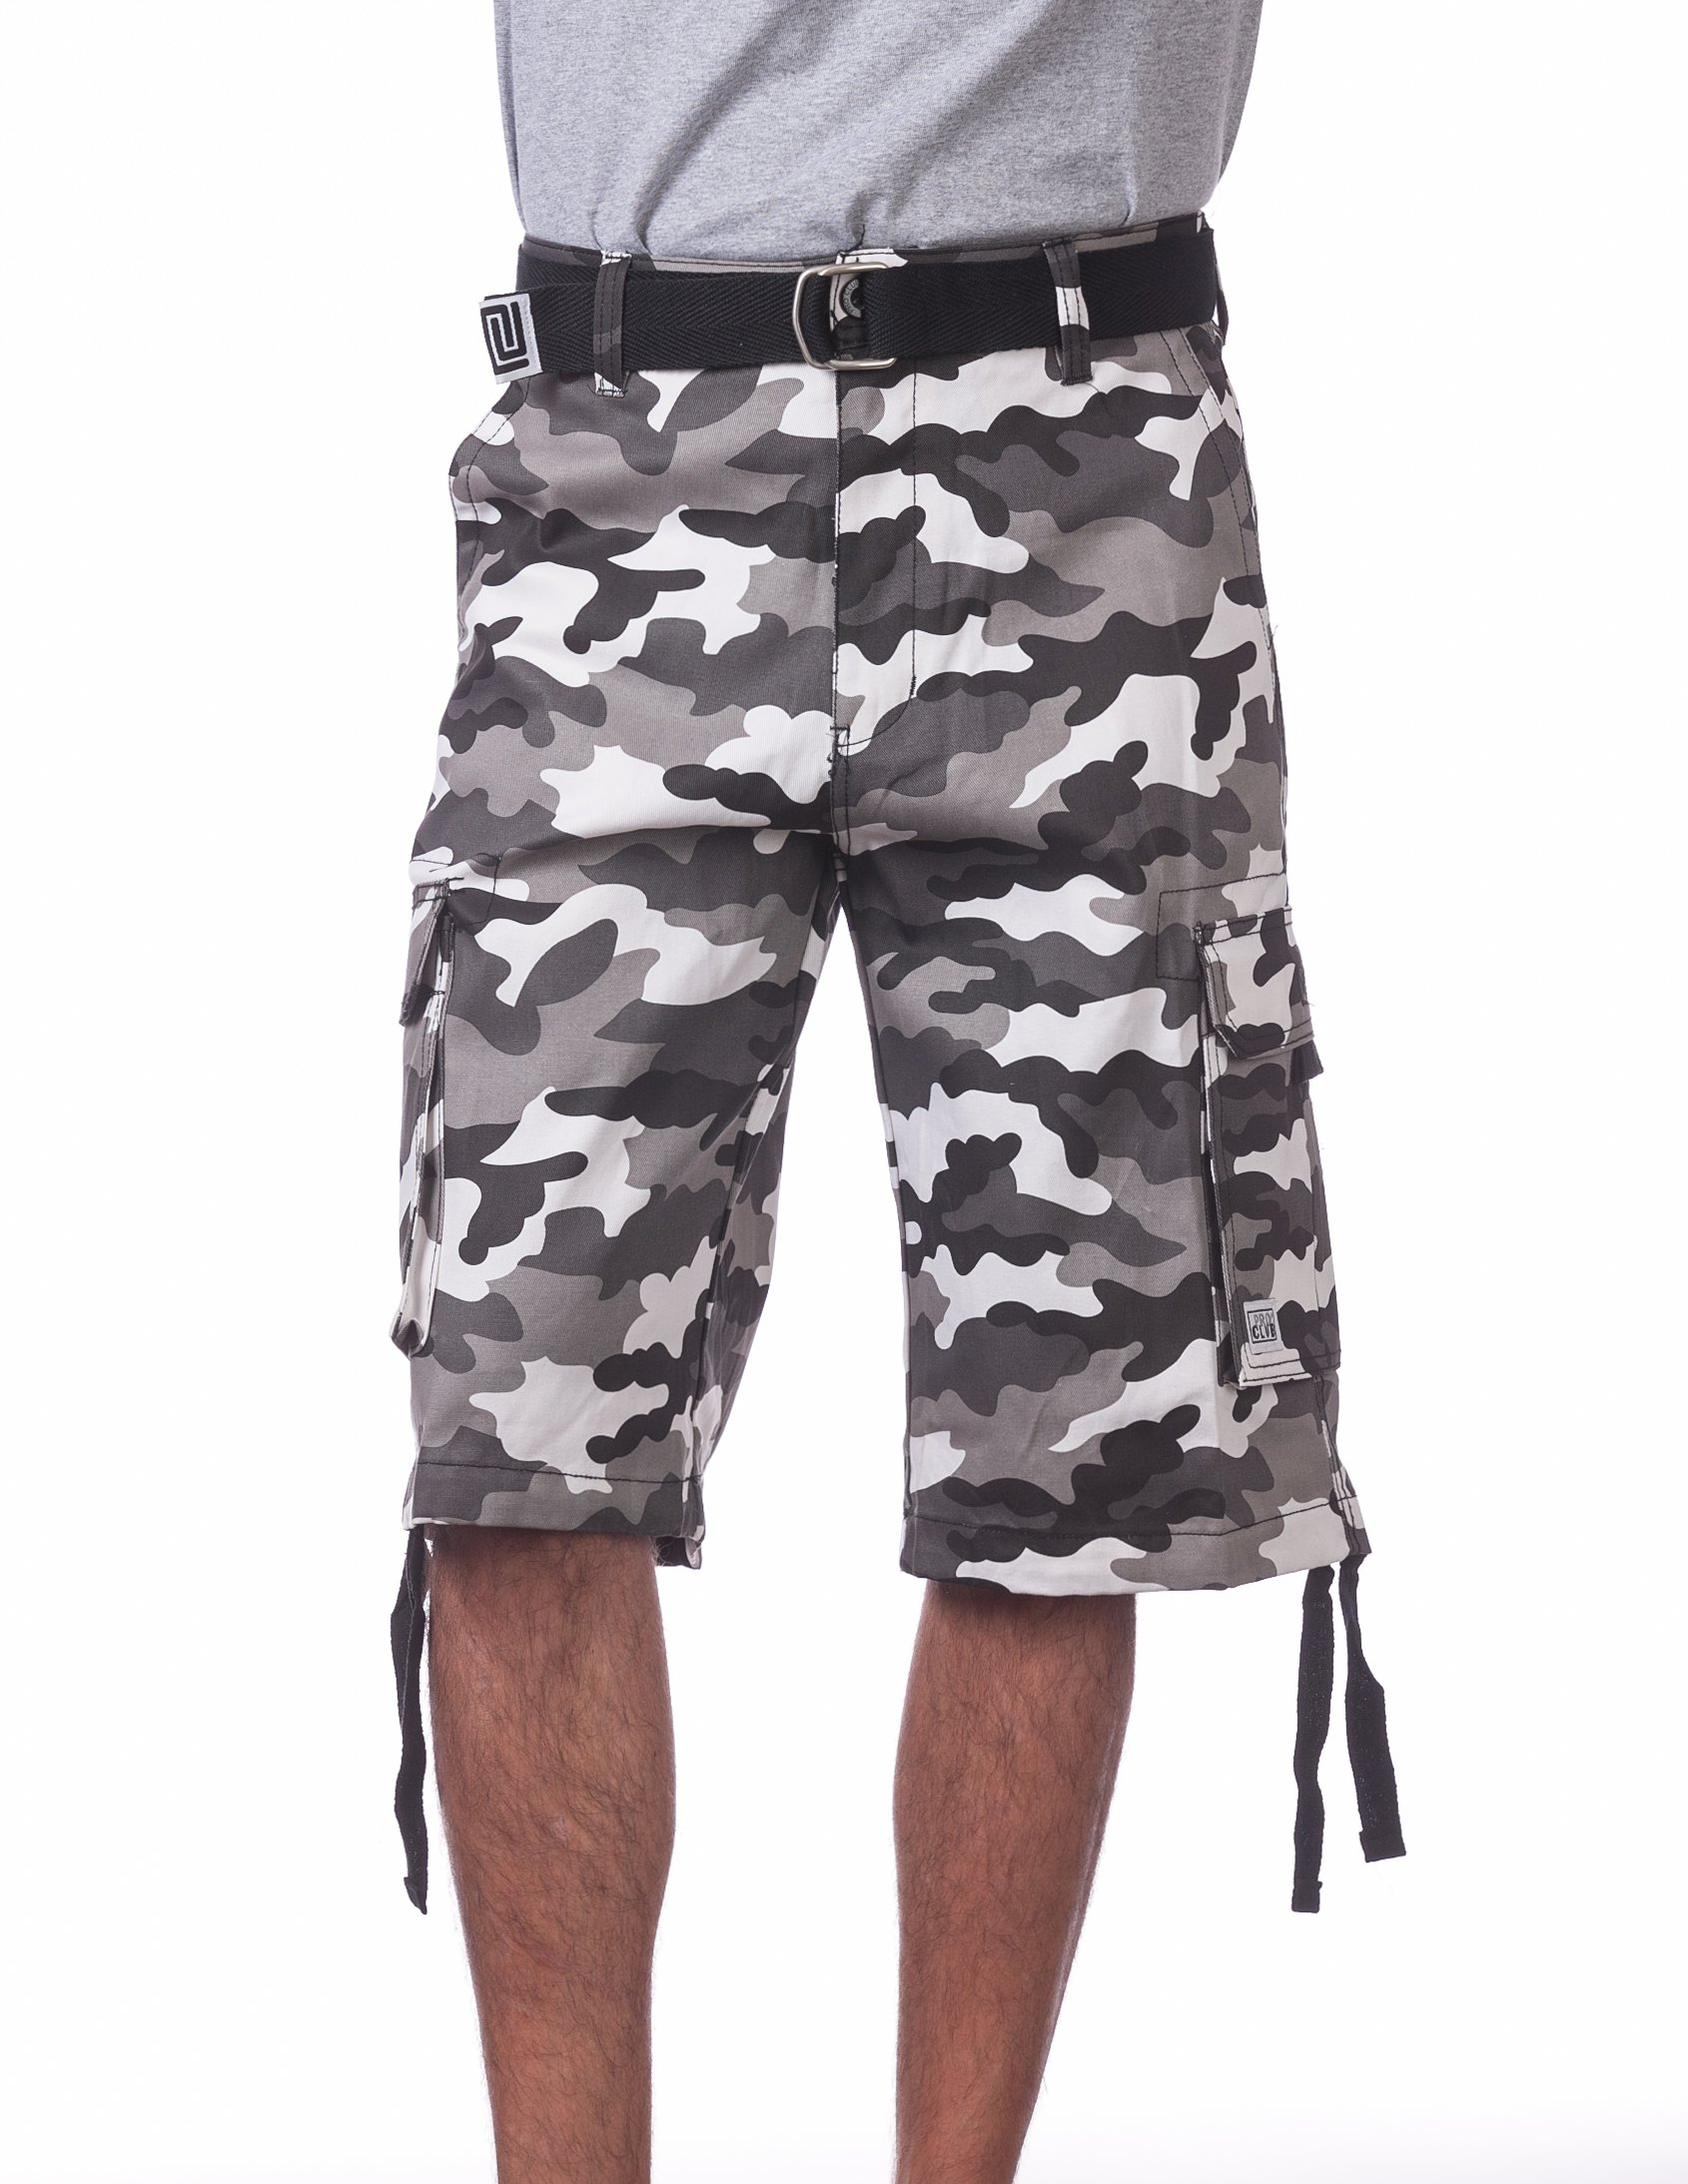 Pro Club Men's Cotton Twill Cargo Shorts with Belt, 36'', White (City Camo)